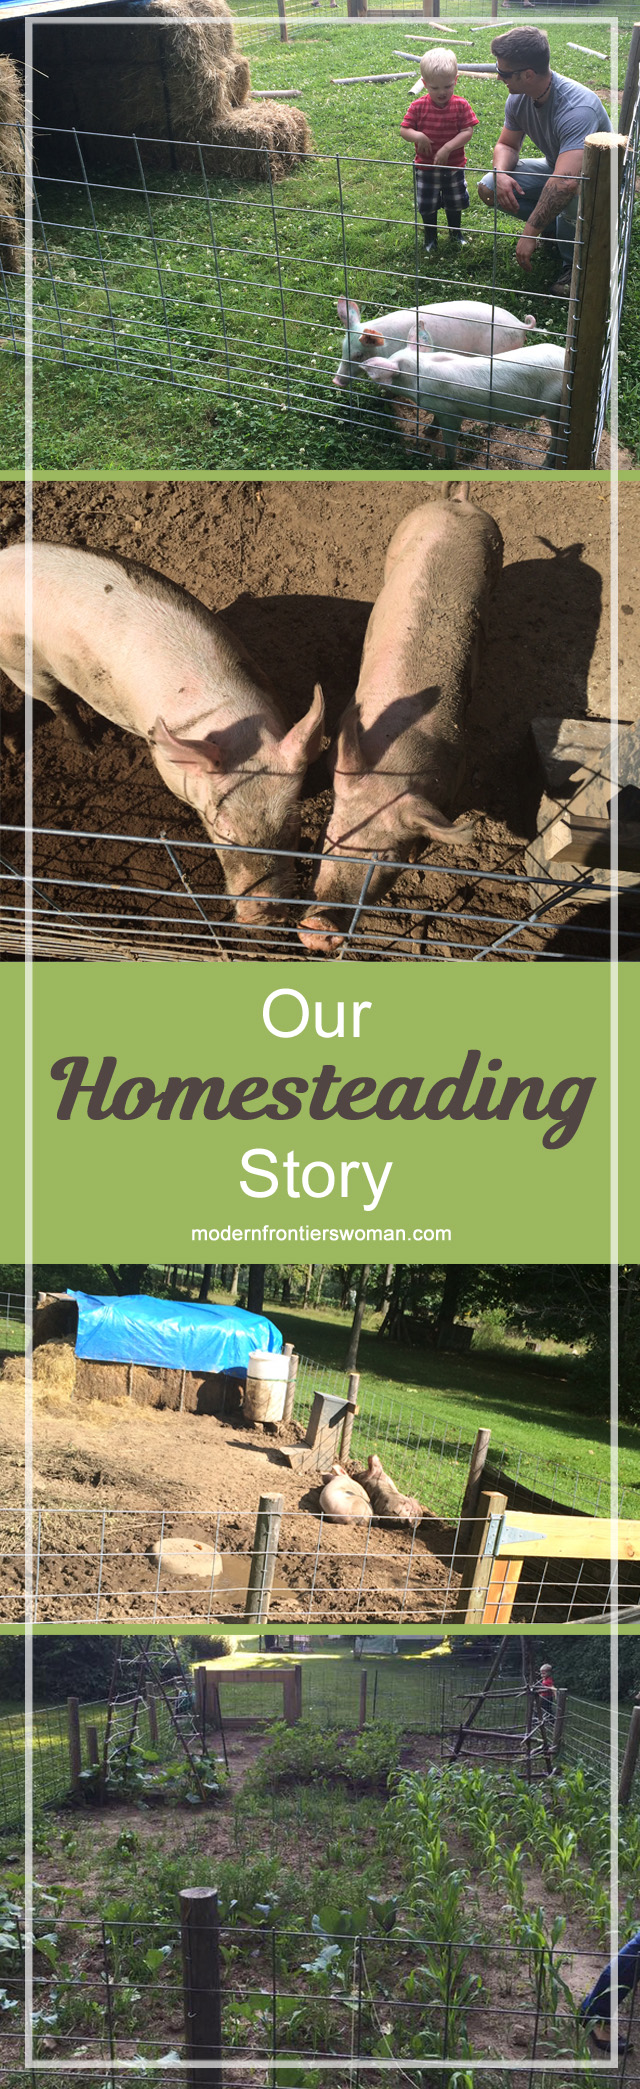 Our Homesteading Story